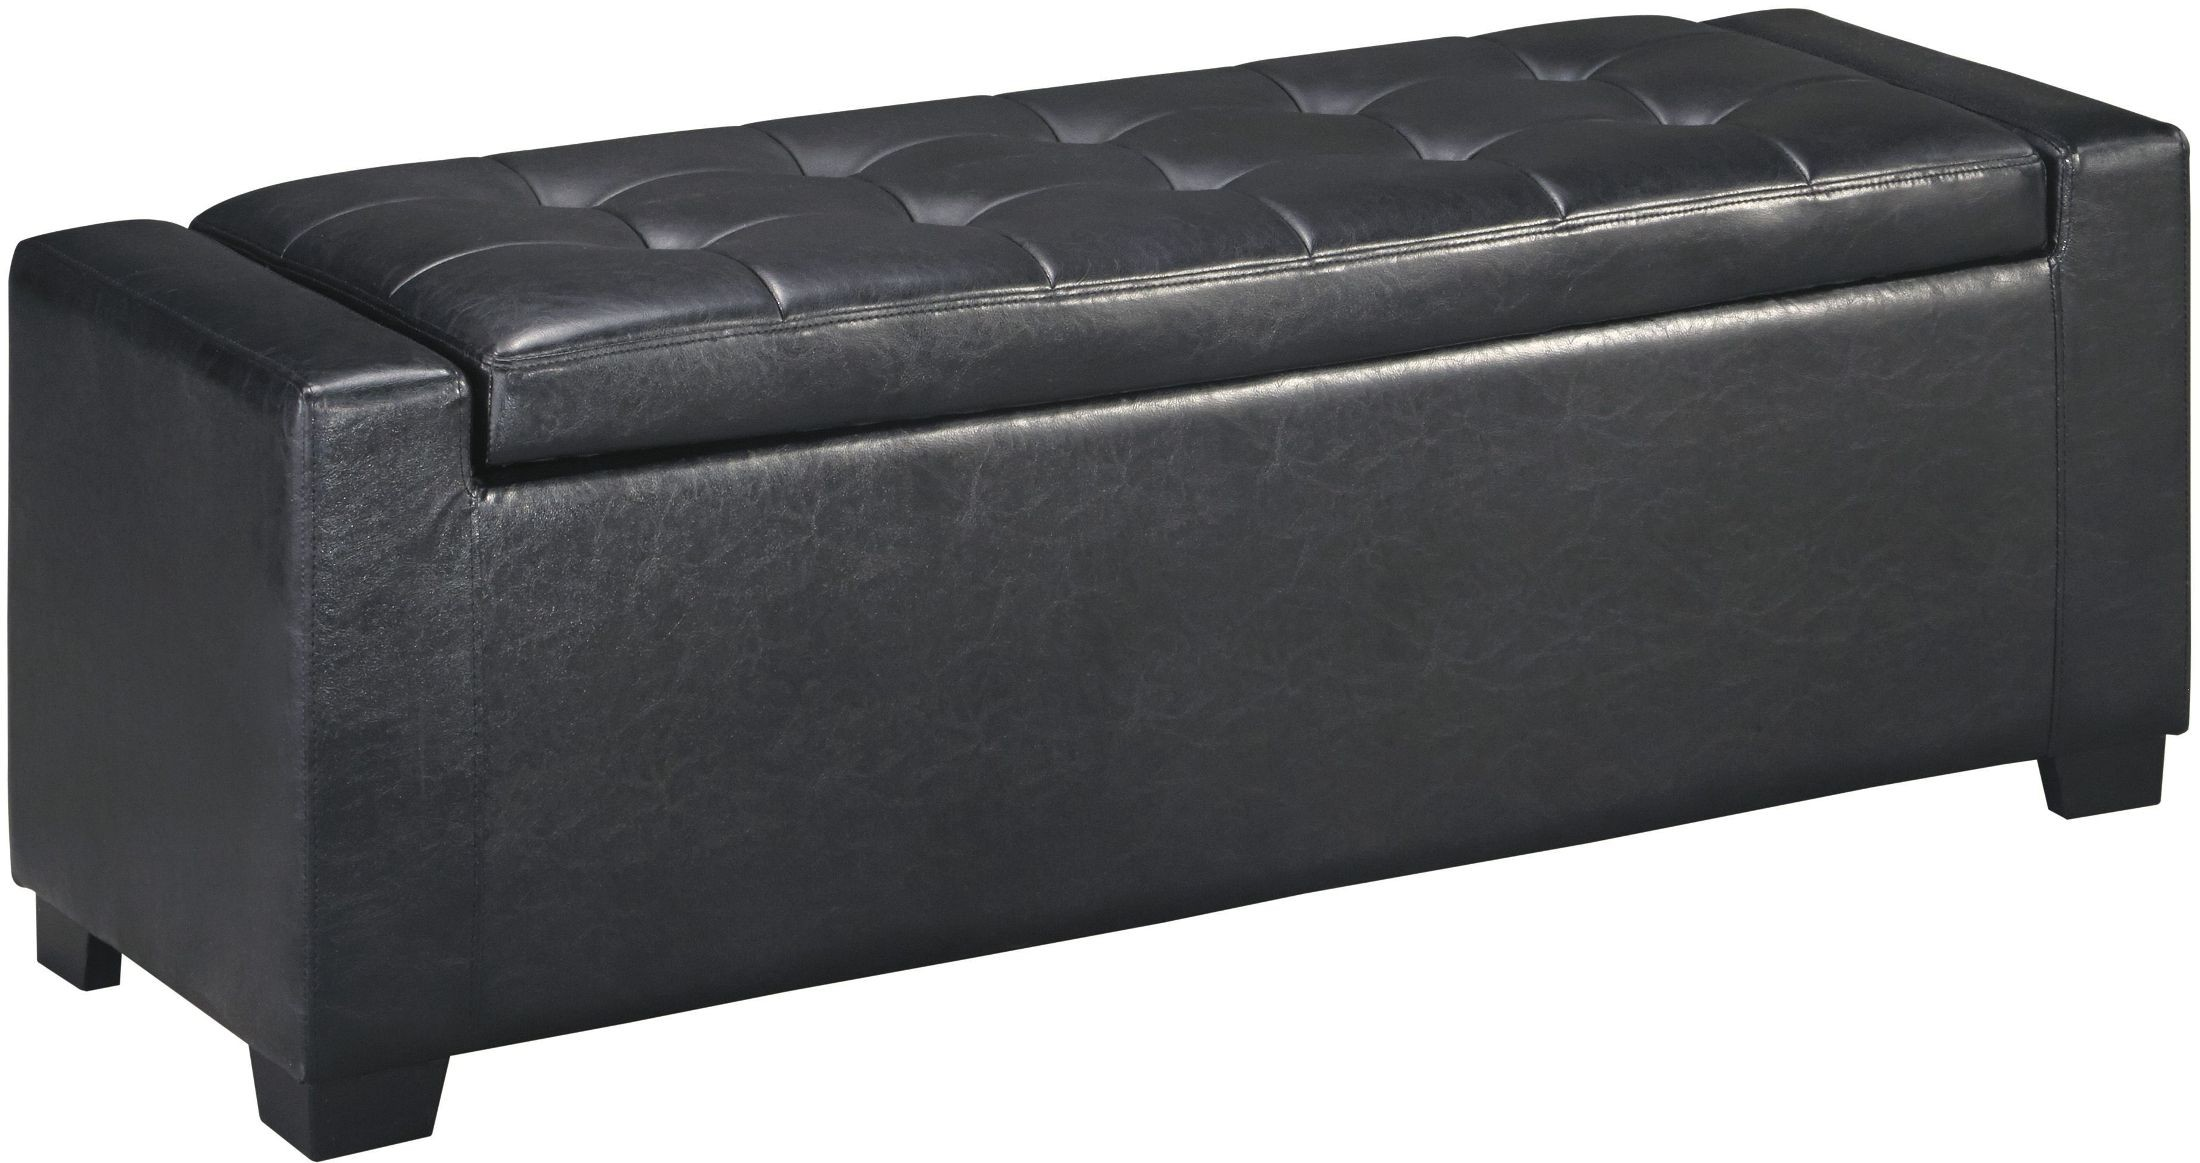 Benches Black Upholstered Storage Bench From Ashley Coleman Furniture